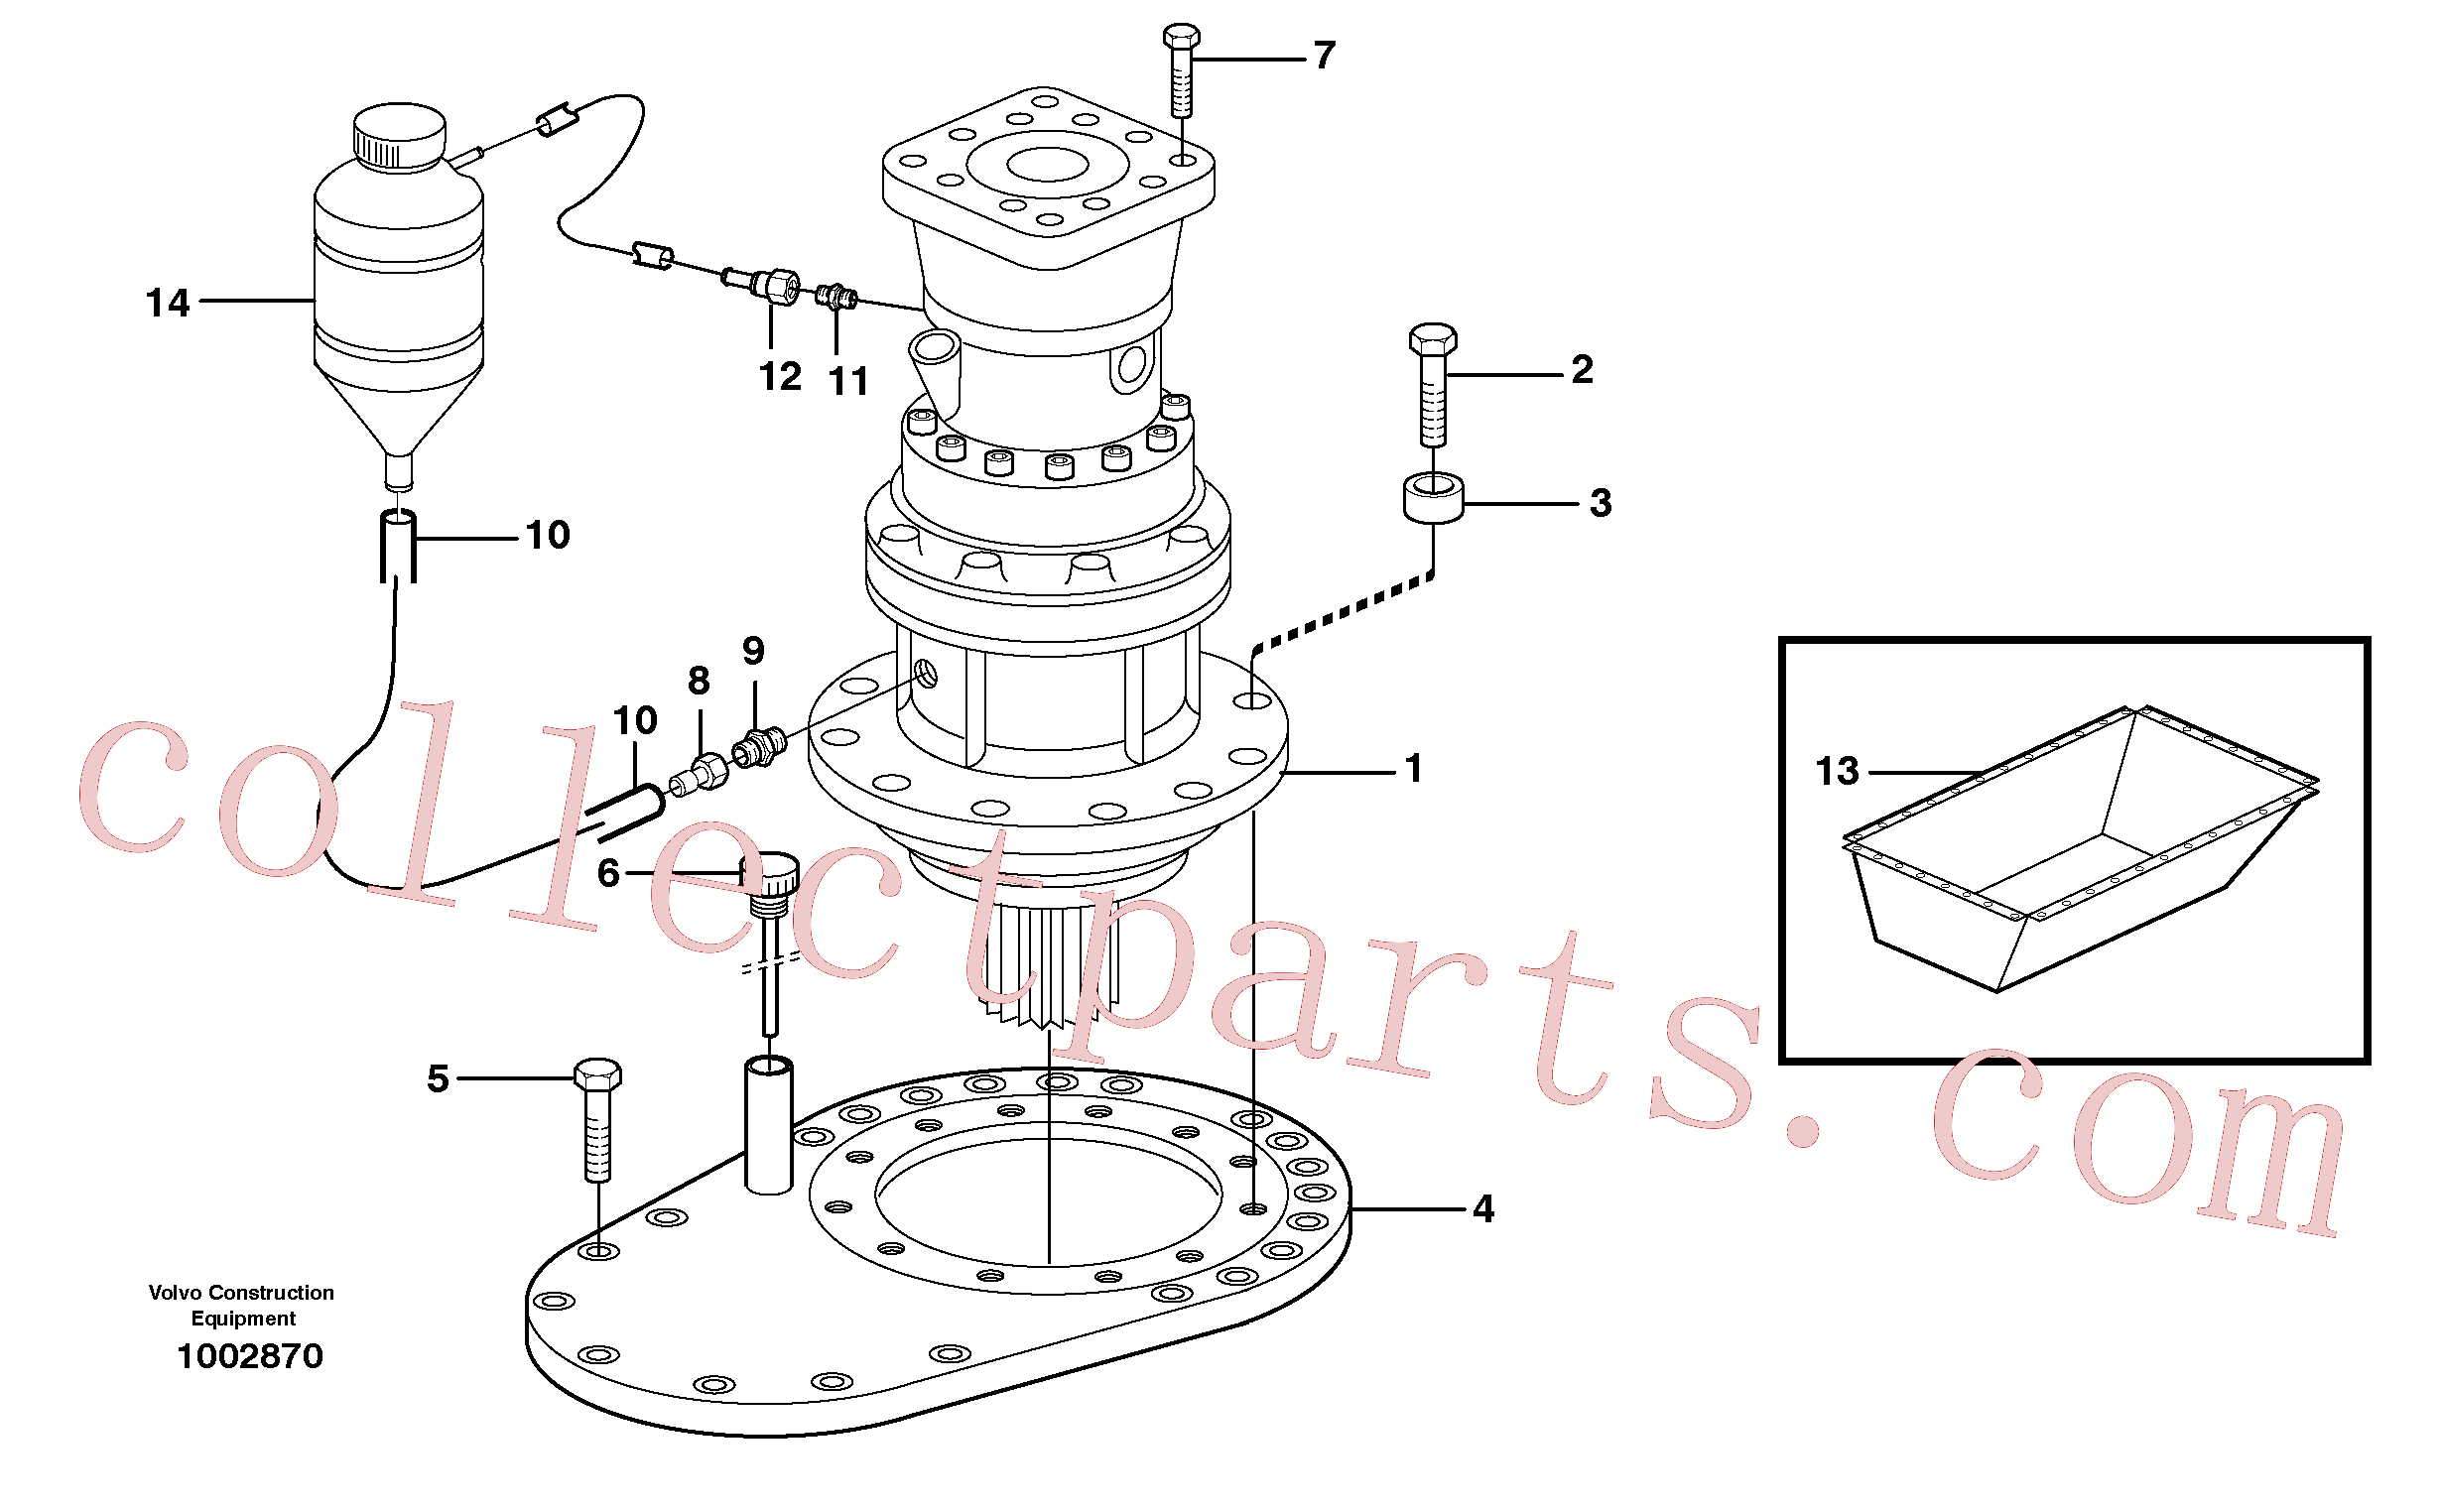 VOE14345323 for Volvo Rebuild kit, Swing gearbox(1002870 assembly)